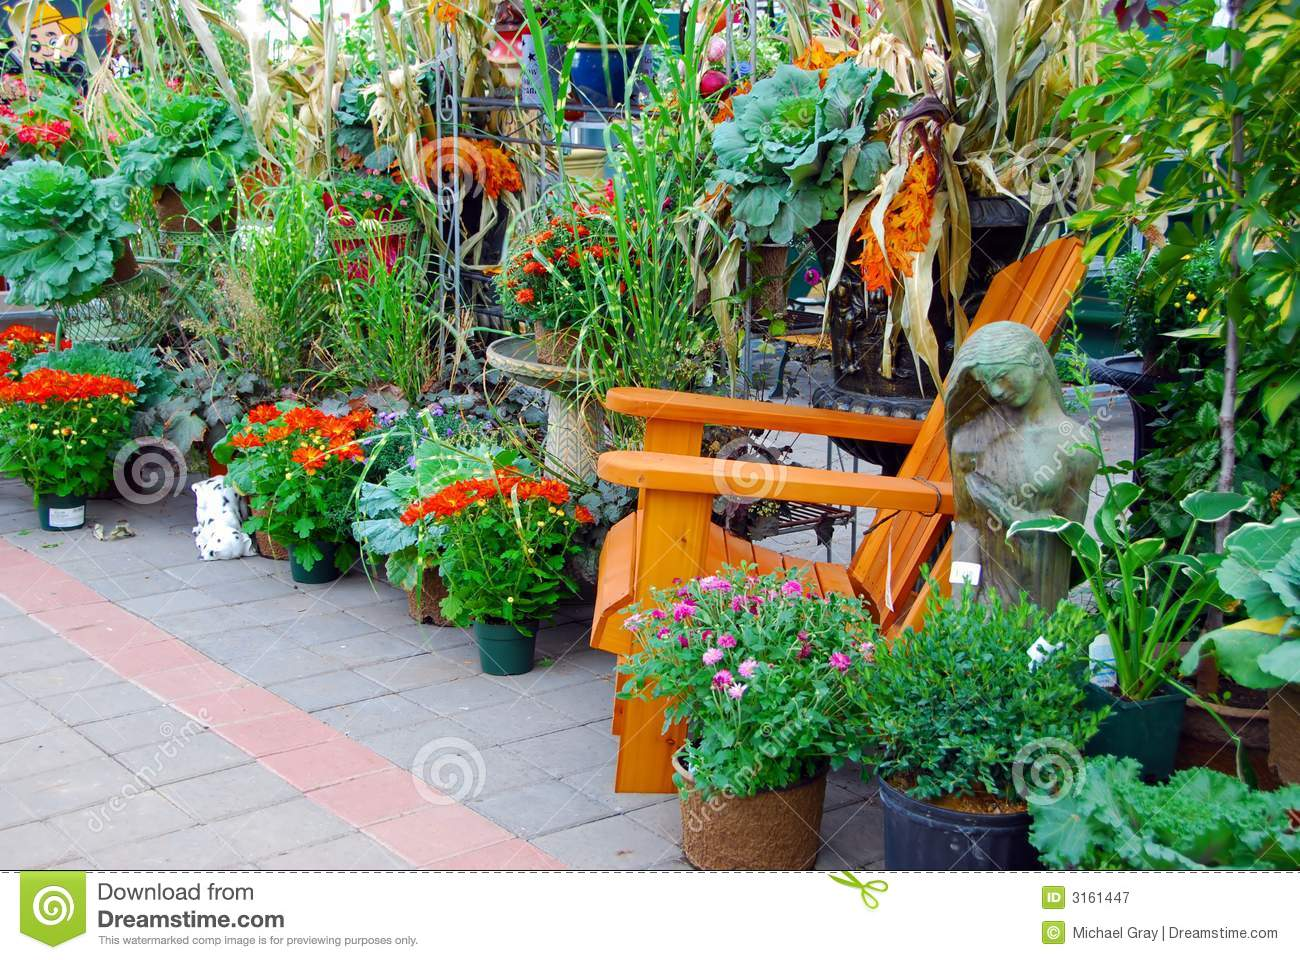 Fall Garden Display Royalty Free Stock Photography - Image: 3161447